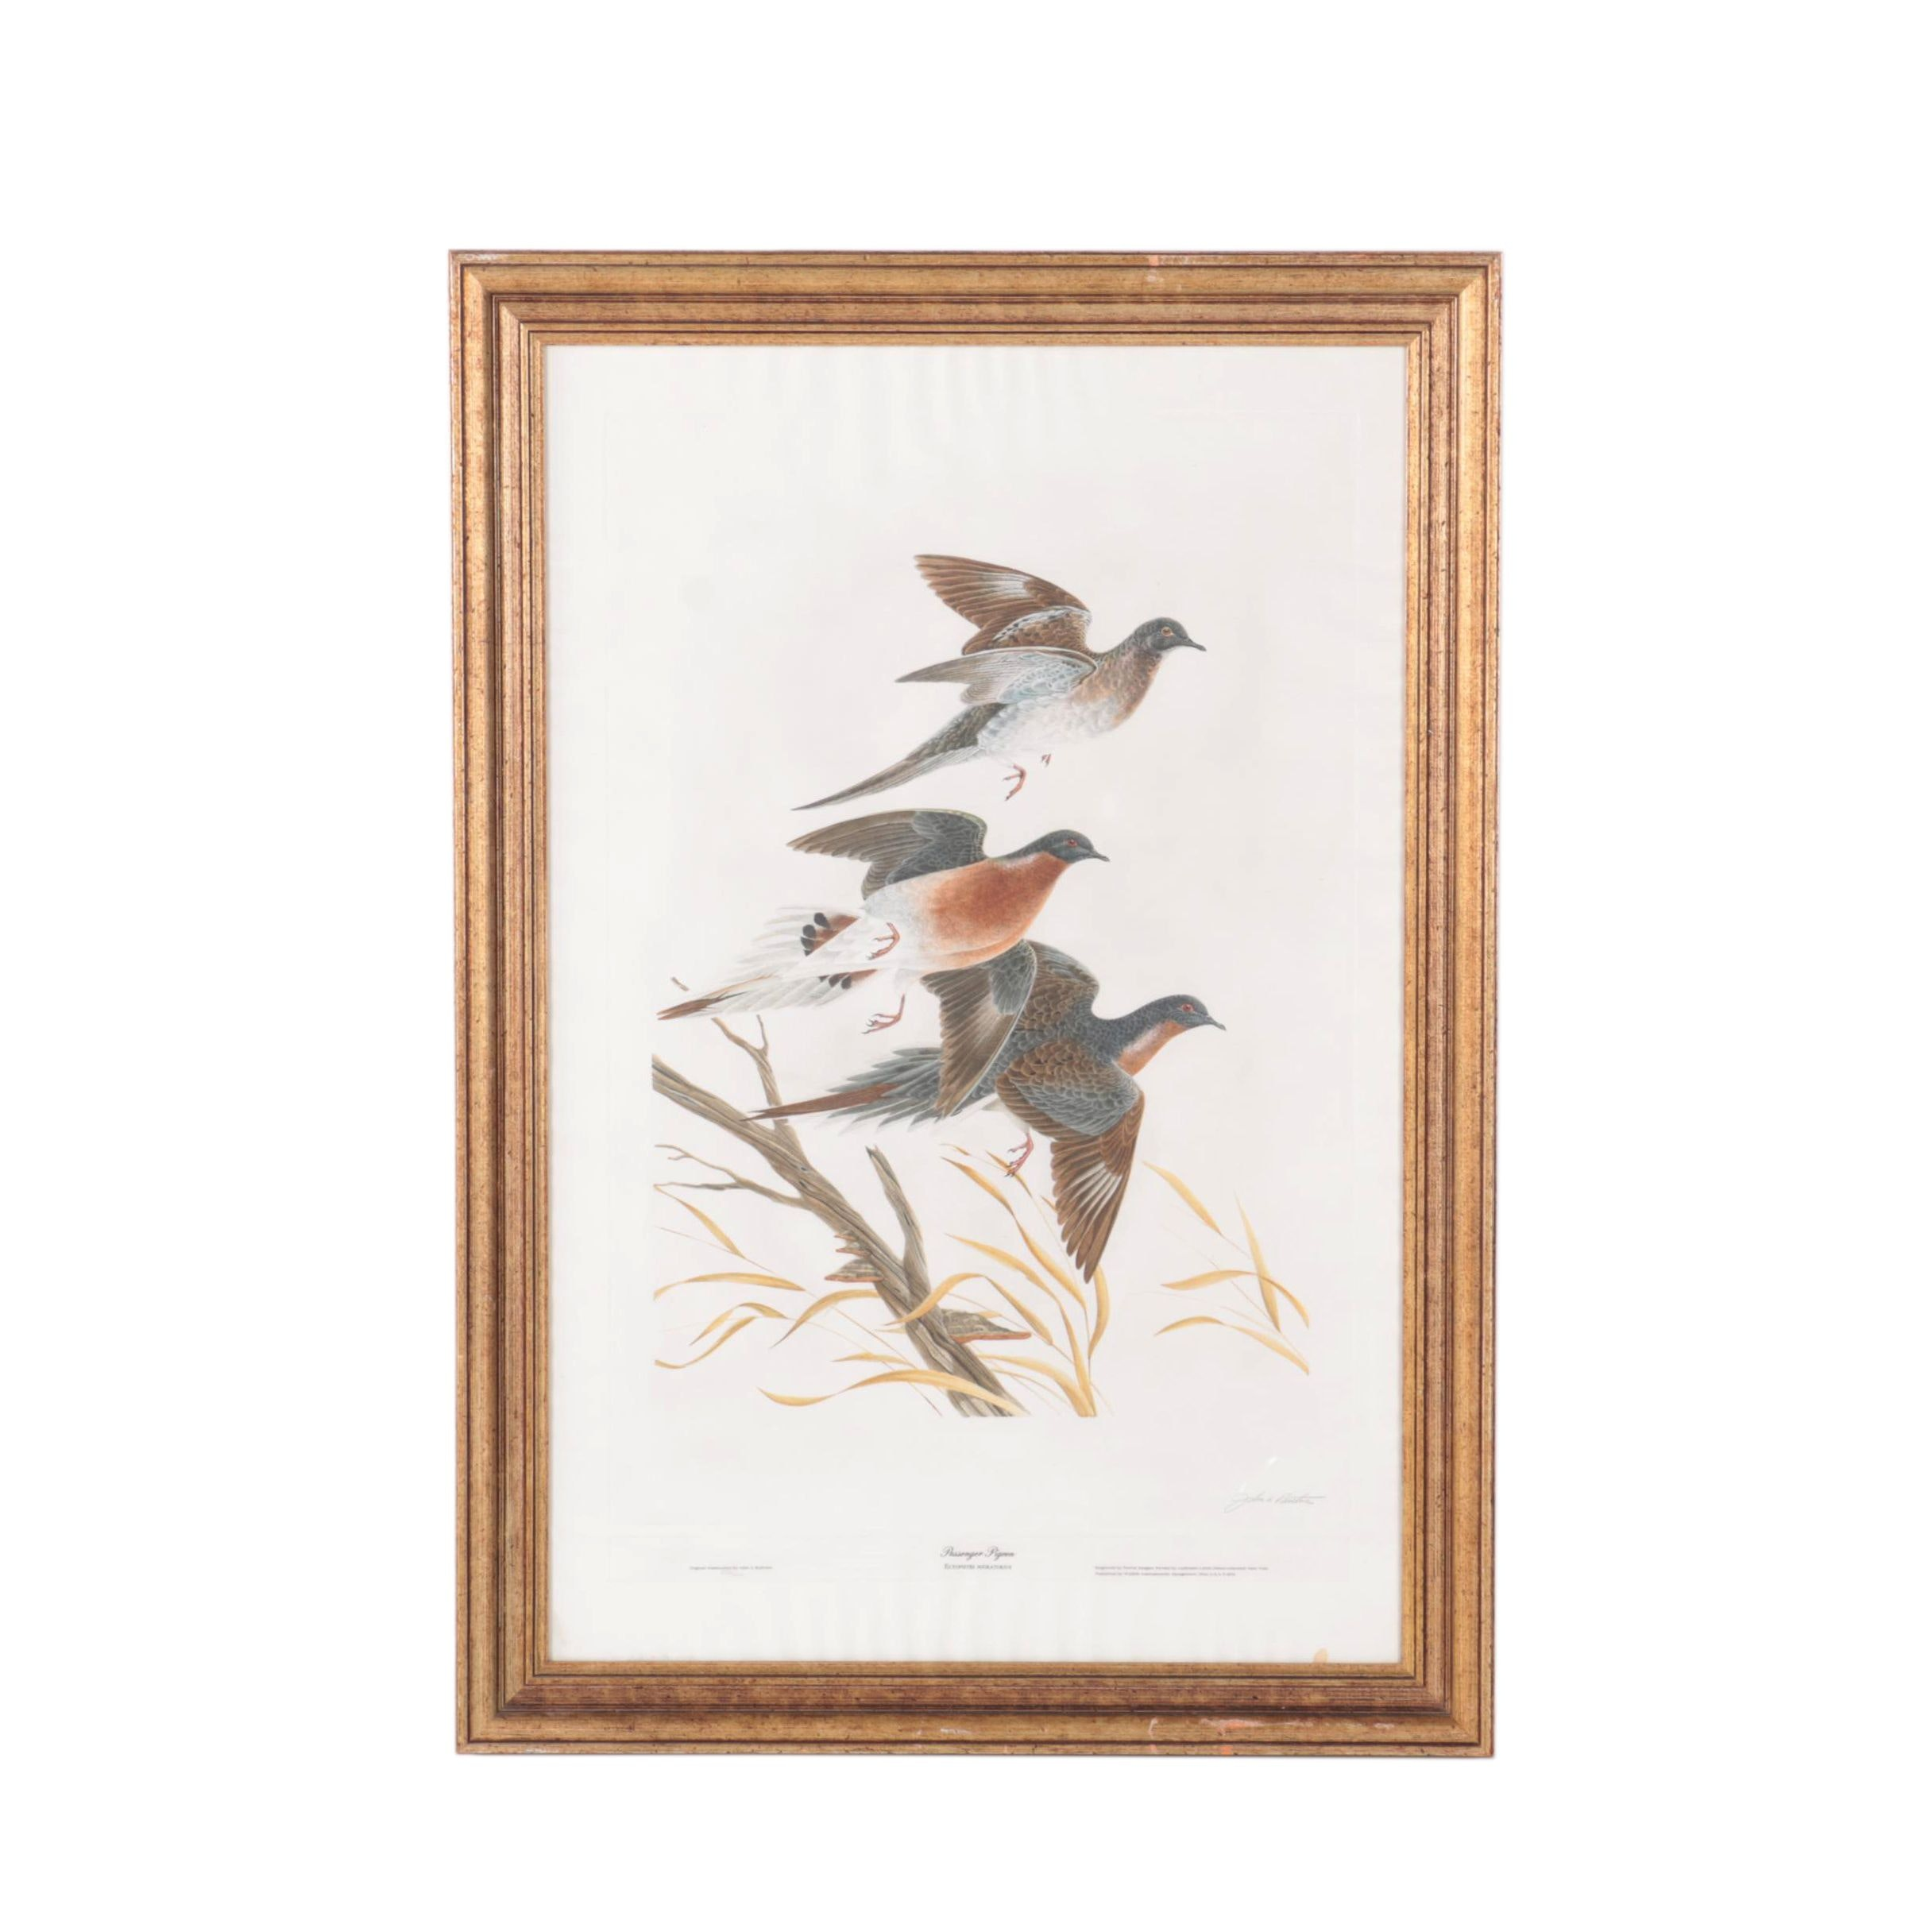 "Norma Morgan Limited Edition Hand Colored Aquatint on Paper After John A. Ruthven's ""Passenger Pigeon"""